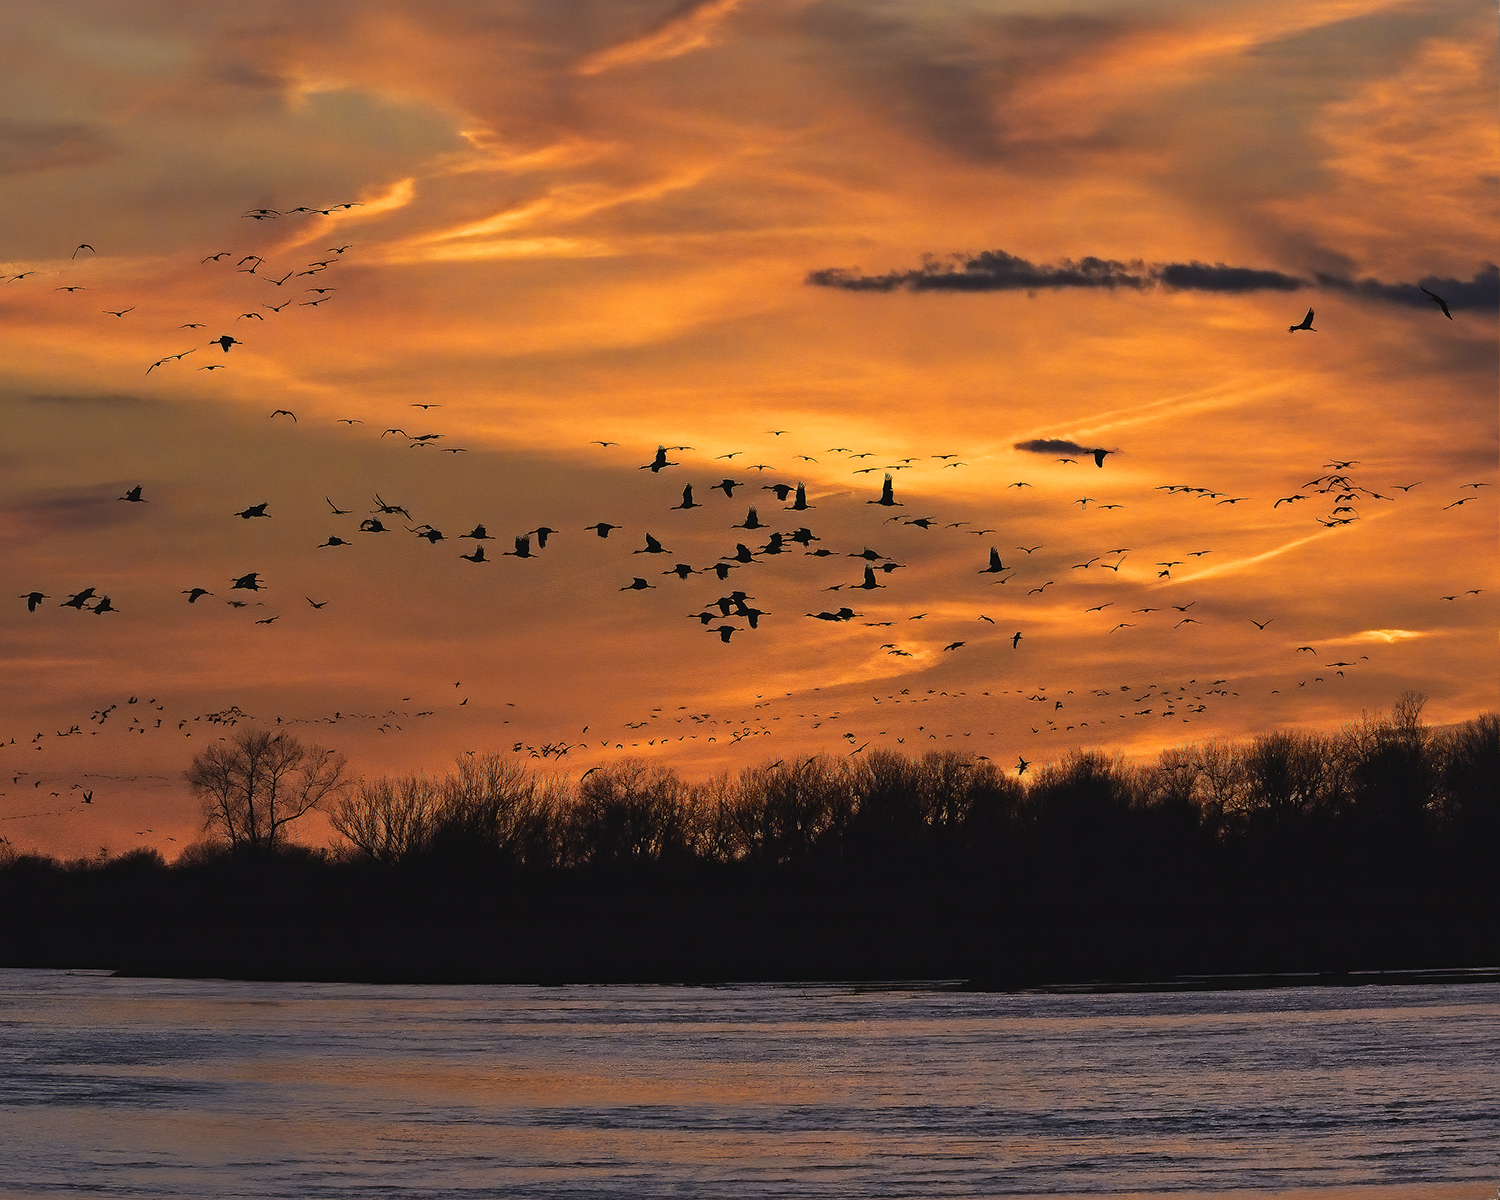 Jim Smigie - Sandhill Cranes at Twilight - Kearney, NE